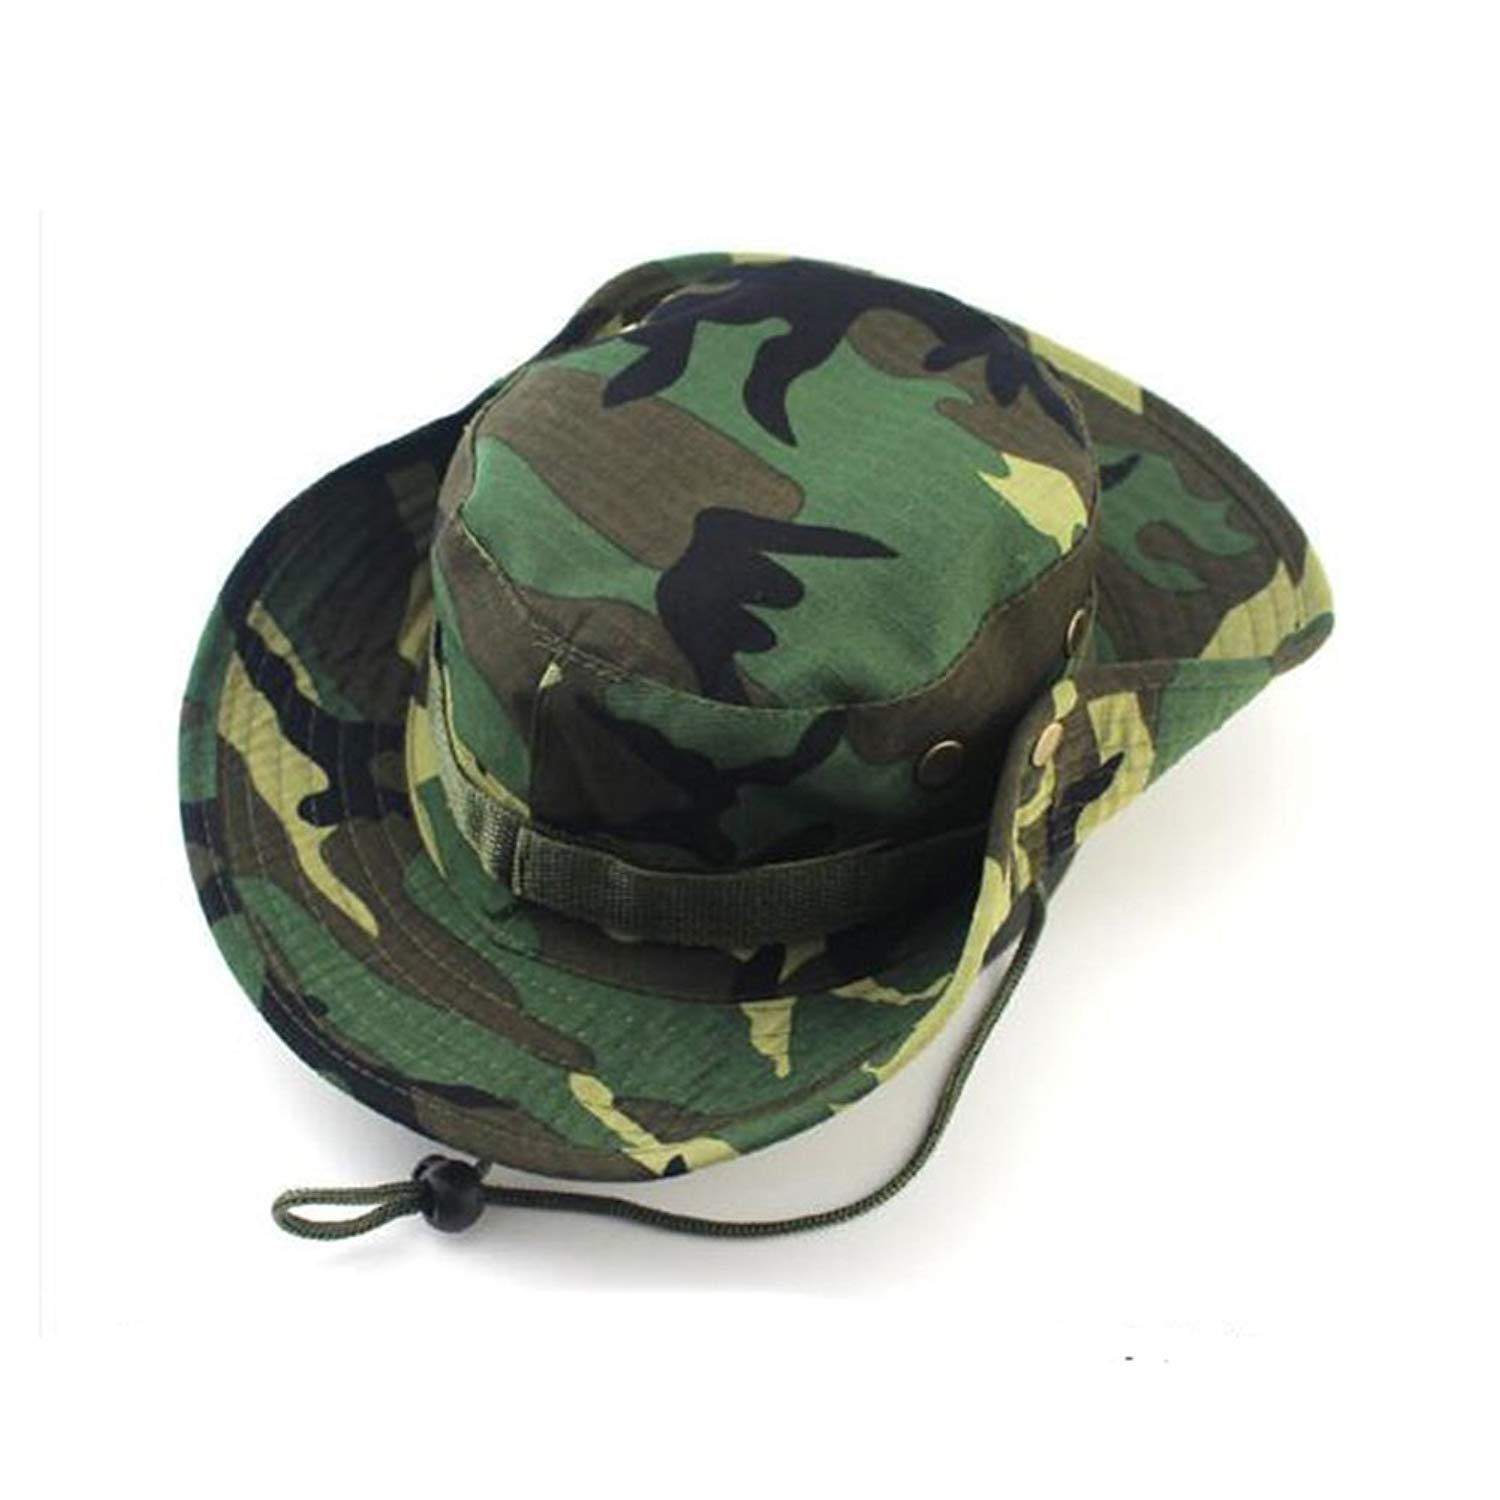 f5ecf6eca89 Get Quotations · Tinksky Men s Fishing Cap Summer Boonie Hat with Chin  Strap for Outdoor Activities (Field Camo